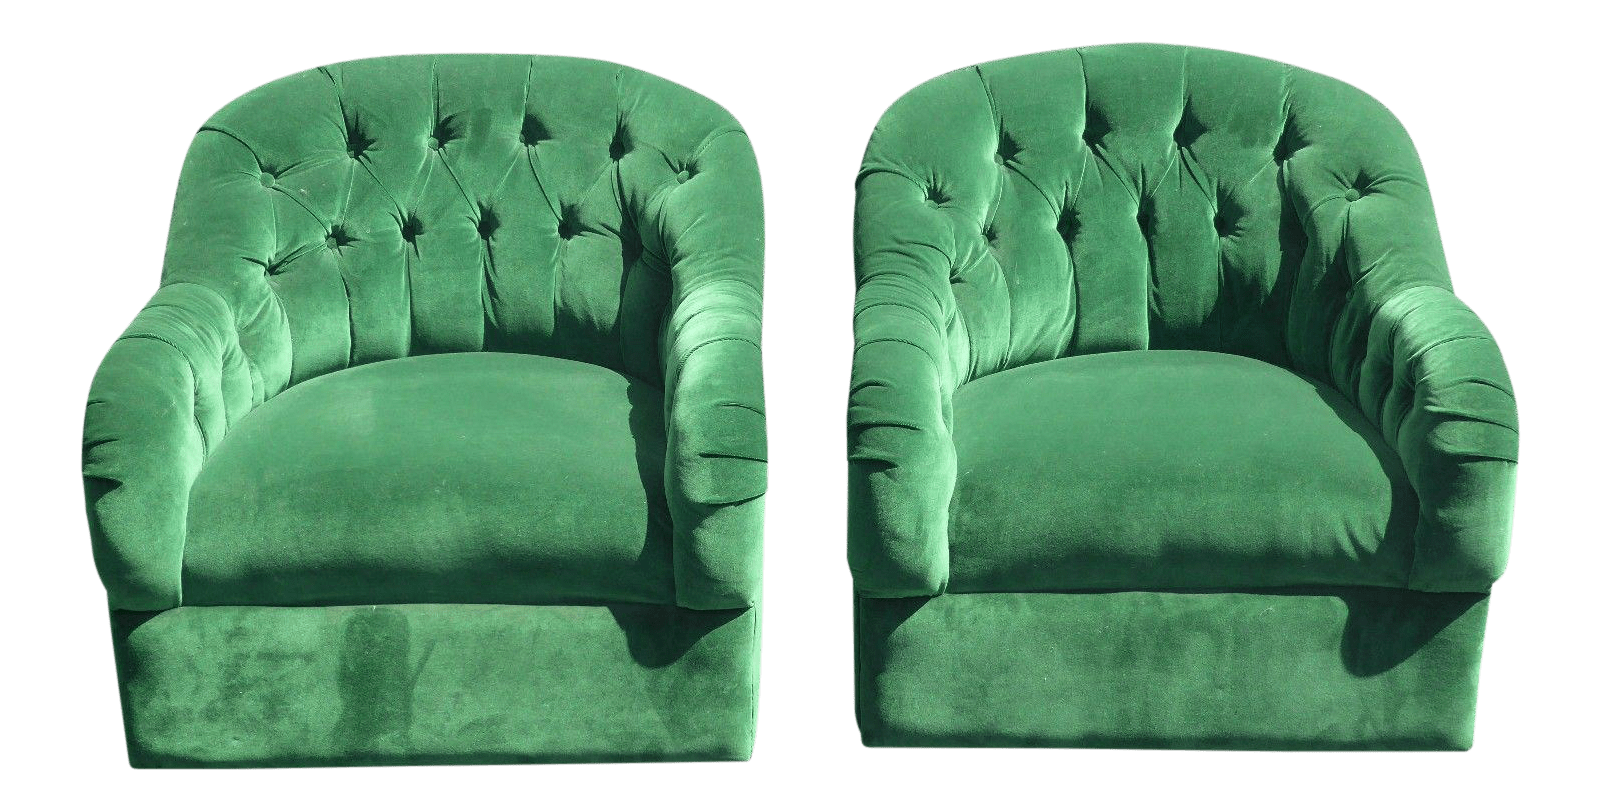 green velvet swivel chair hans wegner the vintage pair of mid century modern tufted